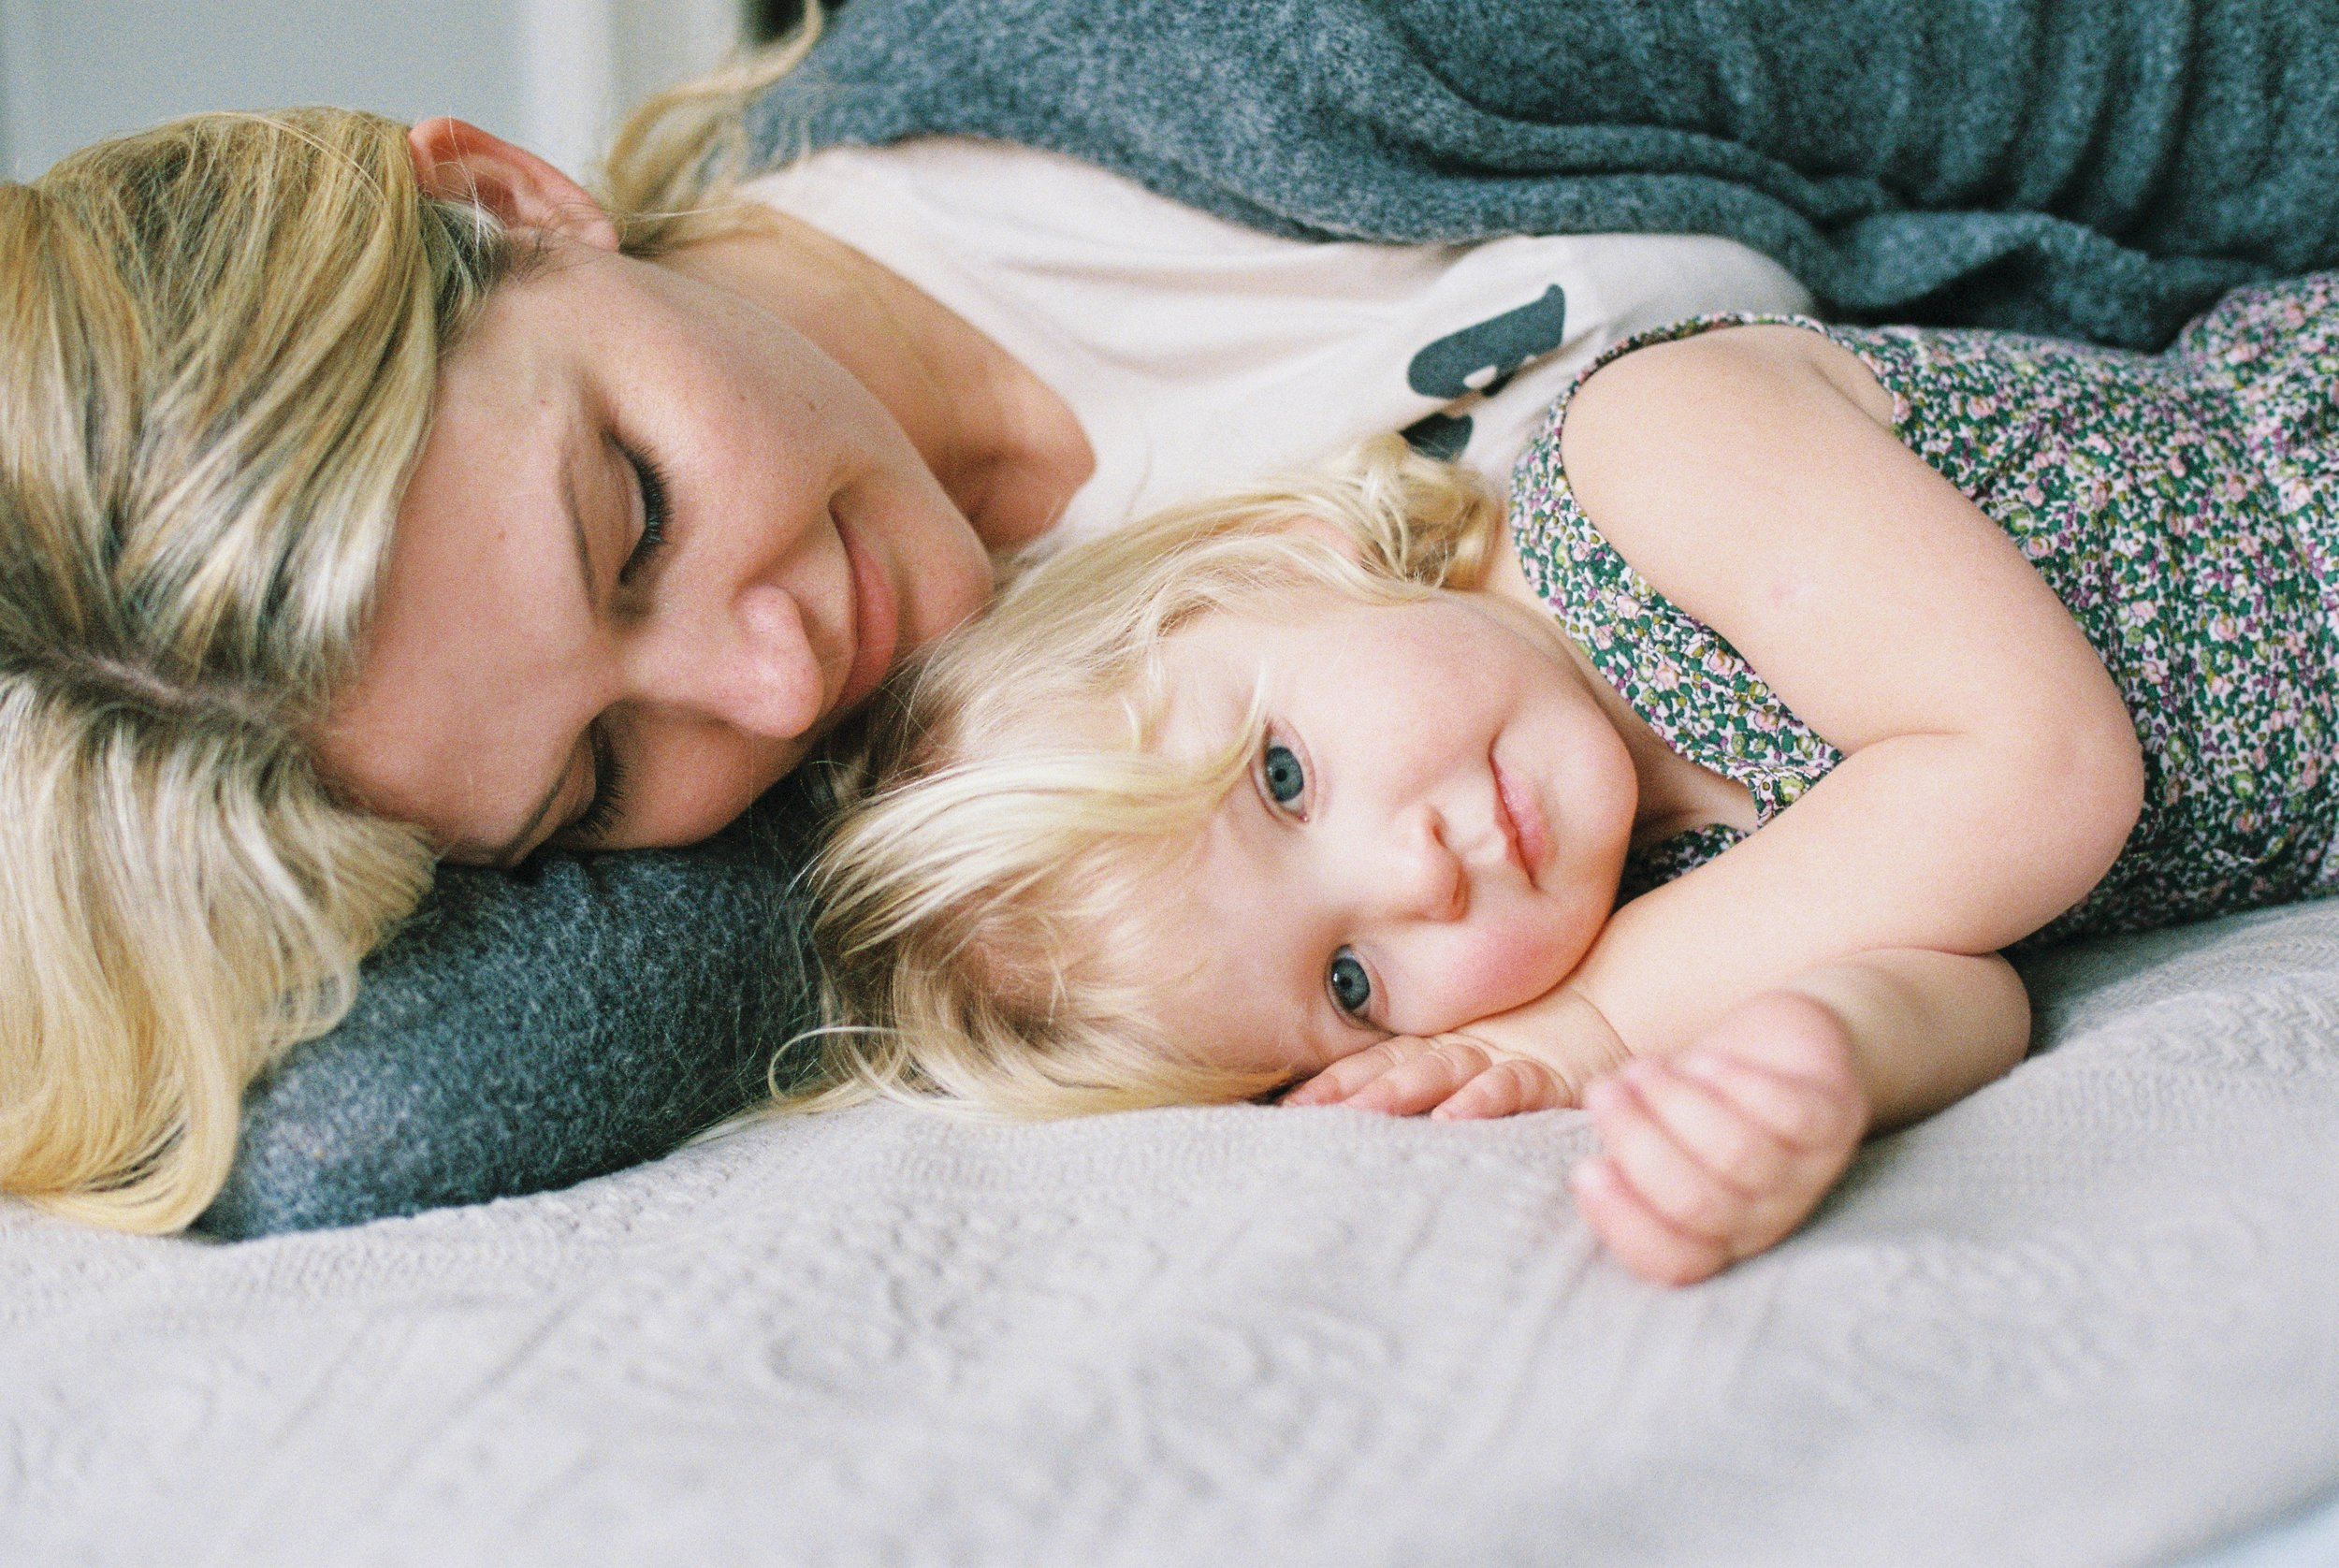 london_surrey_guildford_family_photographer_natural_light_emilywphotography.2.jpg